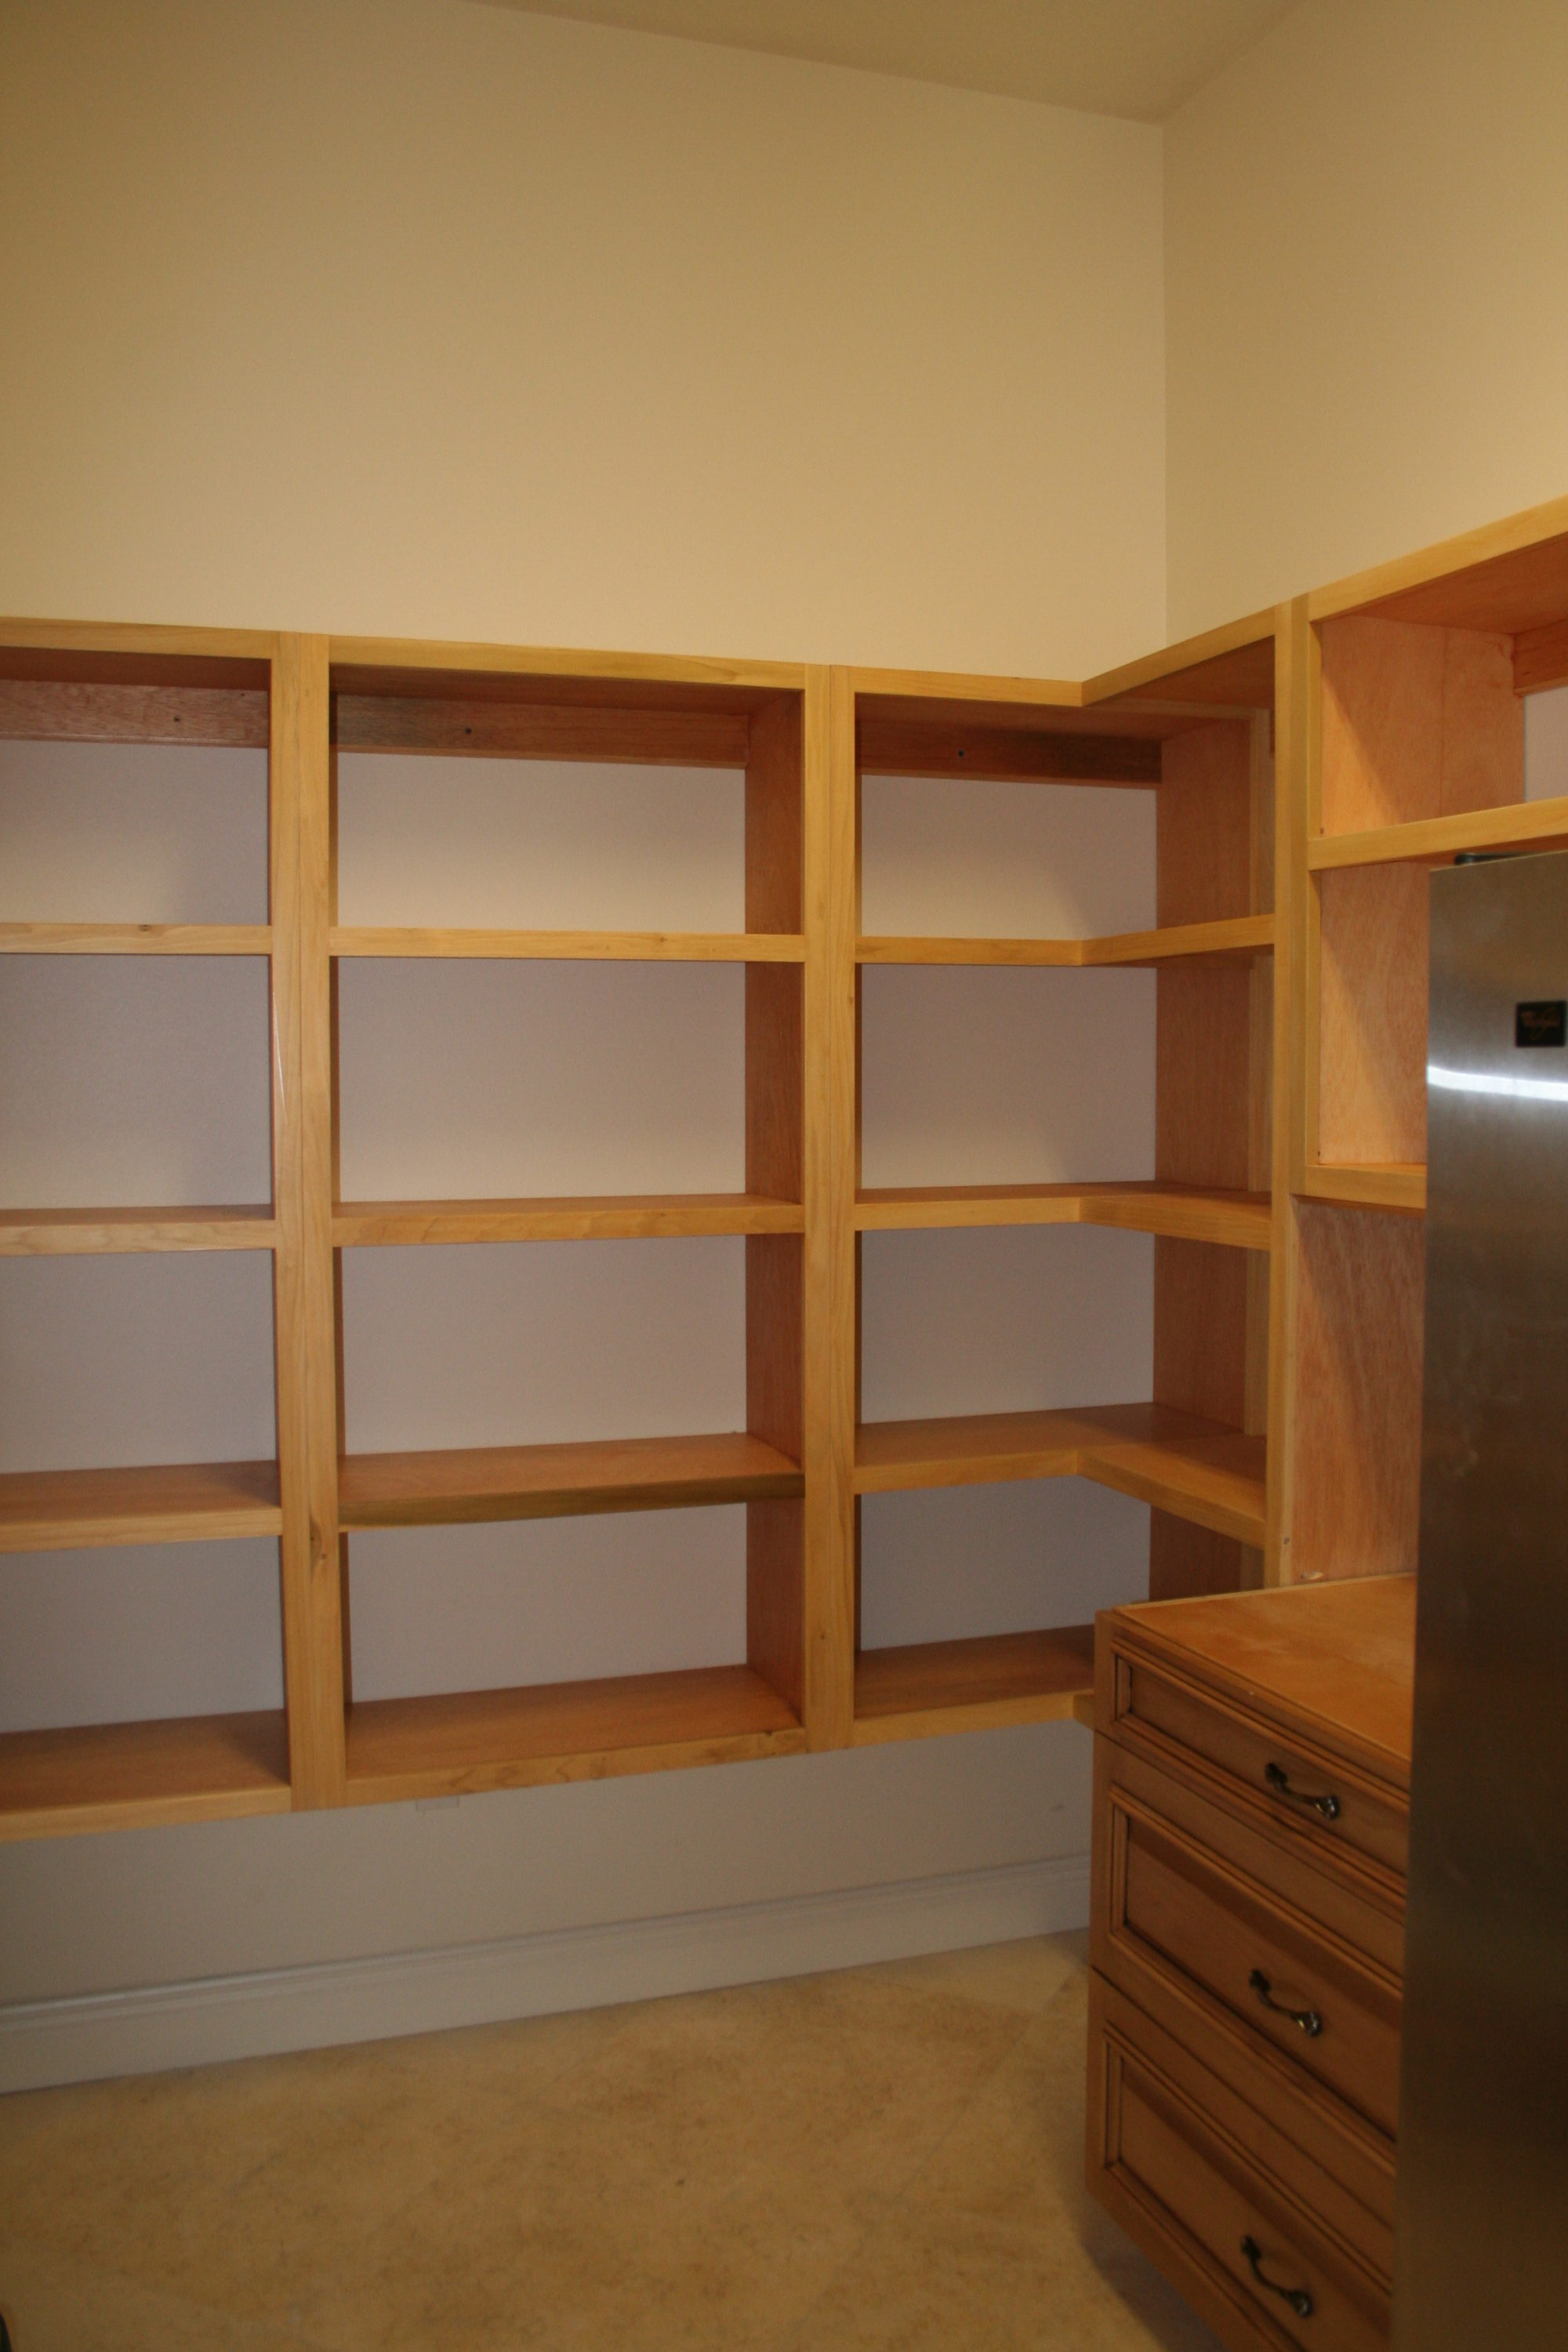 Wooden pantry shelving systems